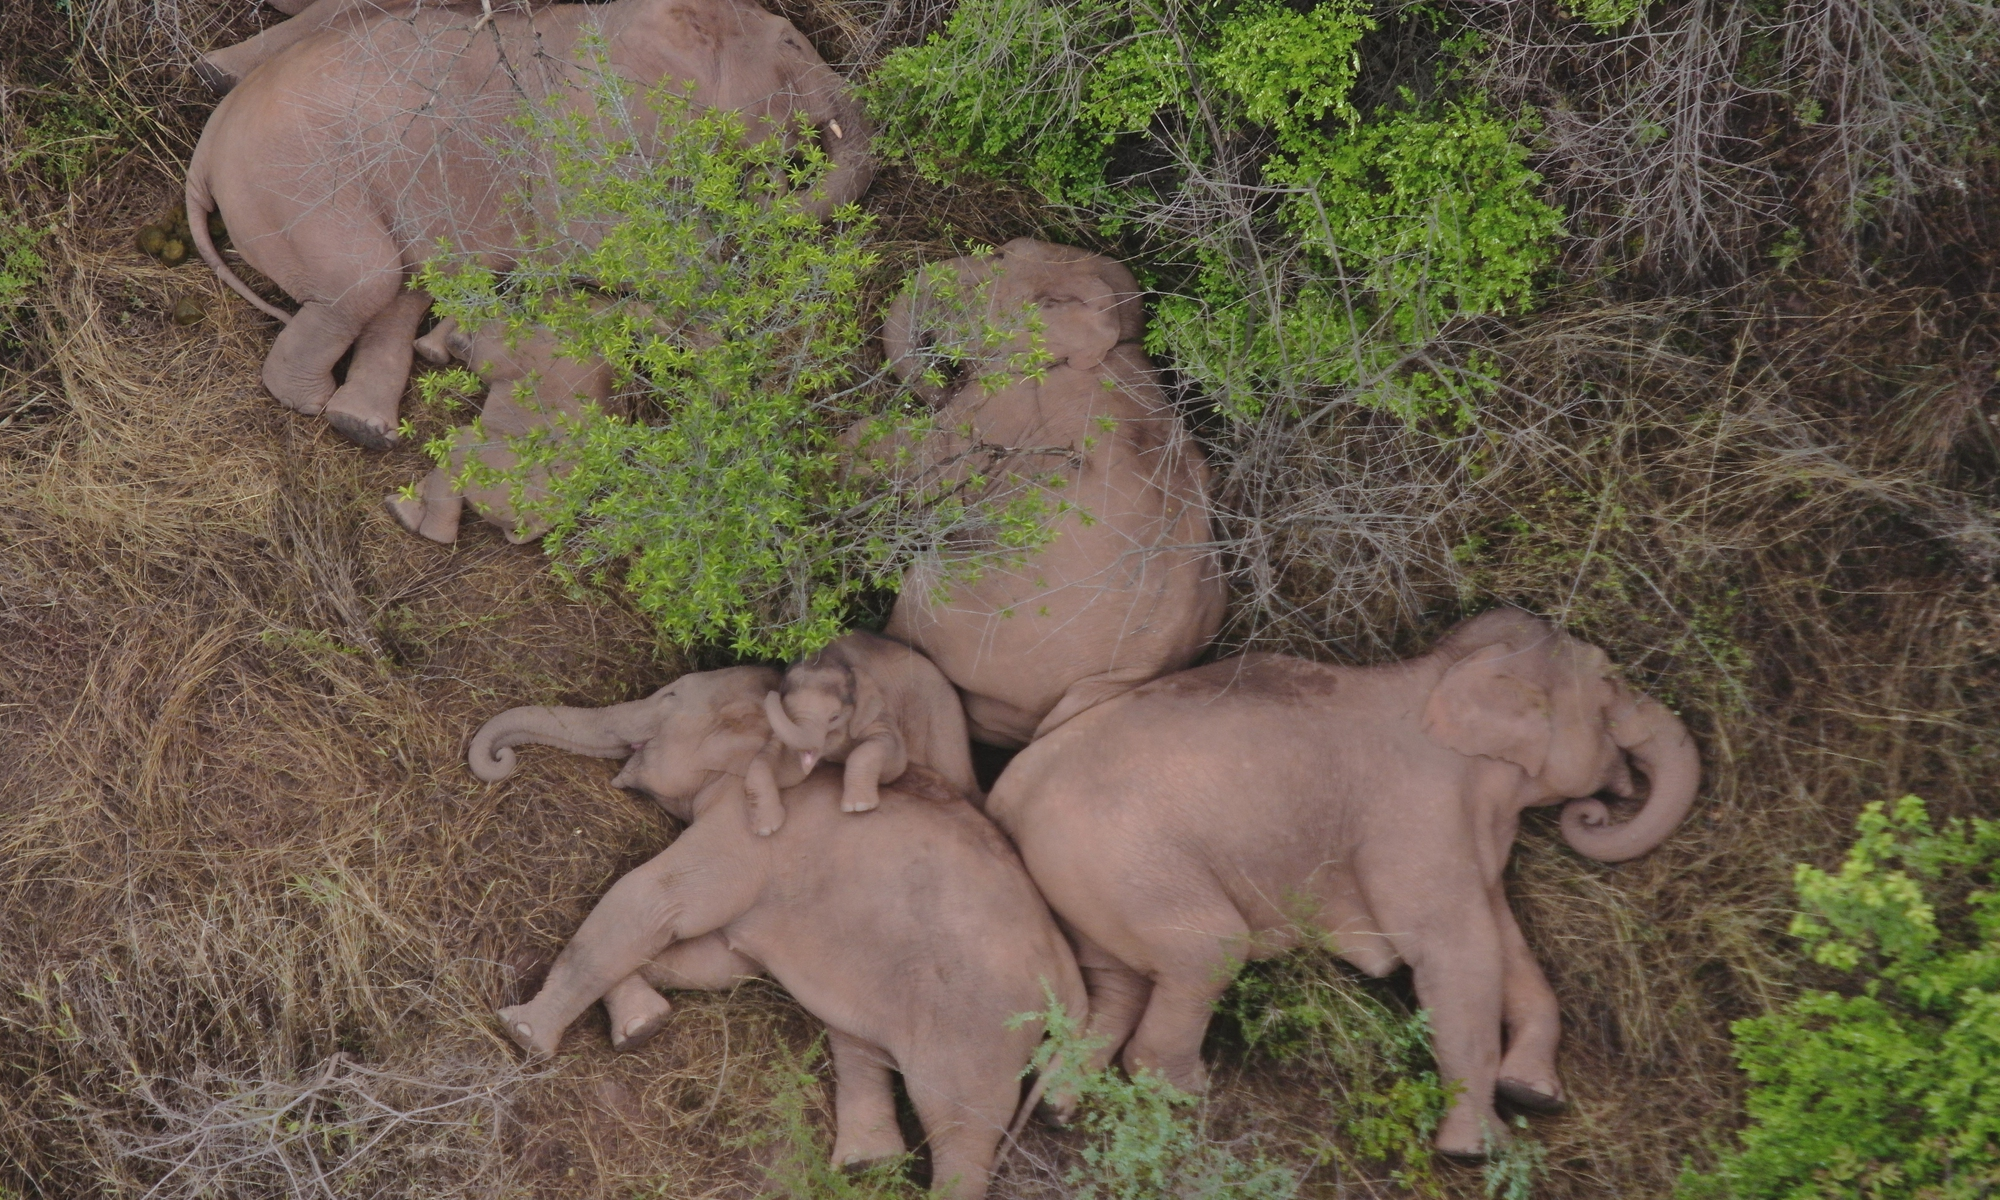 Stray wild elephants take a nap in a forest in Southwest China's Yunnan Province. The herd left its original habitat on April 16 and wandered more than 600 kilometers. Photo: VCG